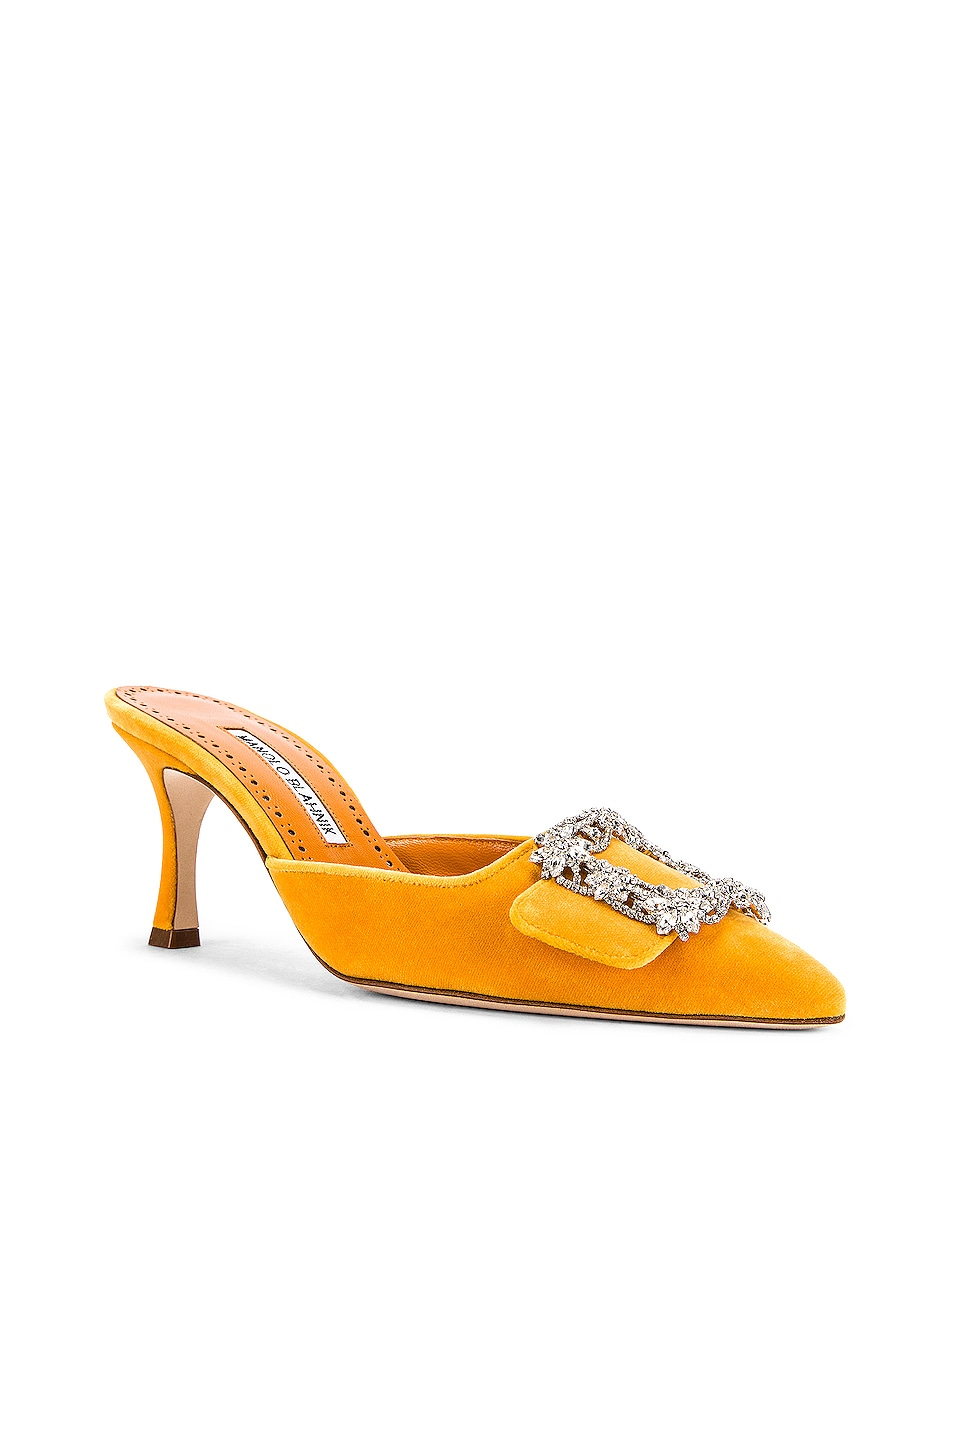 Image 3 of Manolo Blahnik Maysale Jewel 40 Mule in Yolk